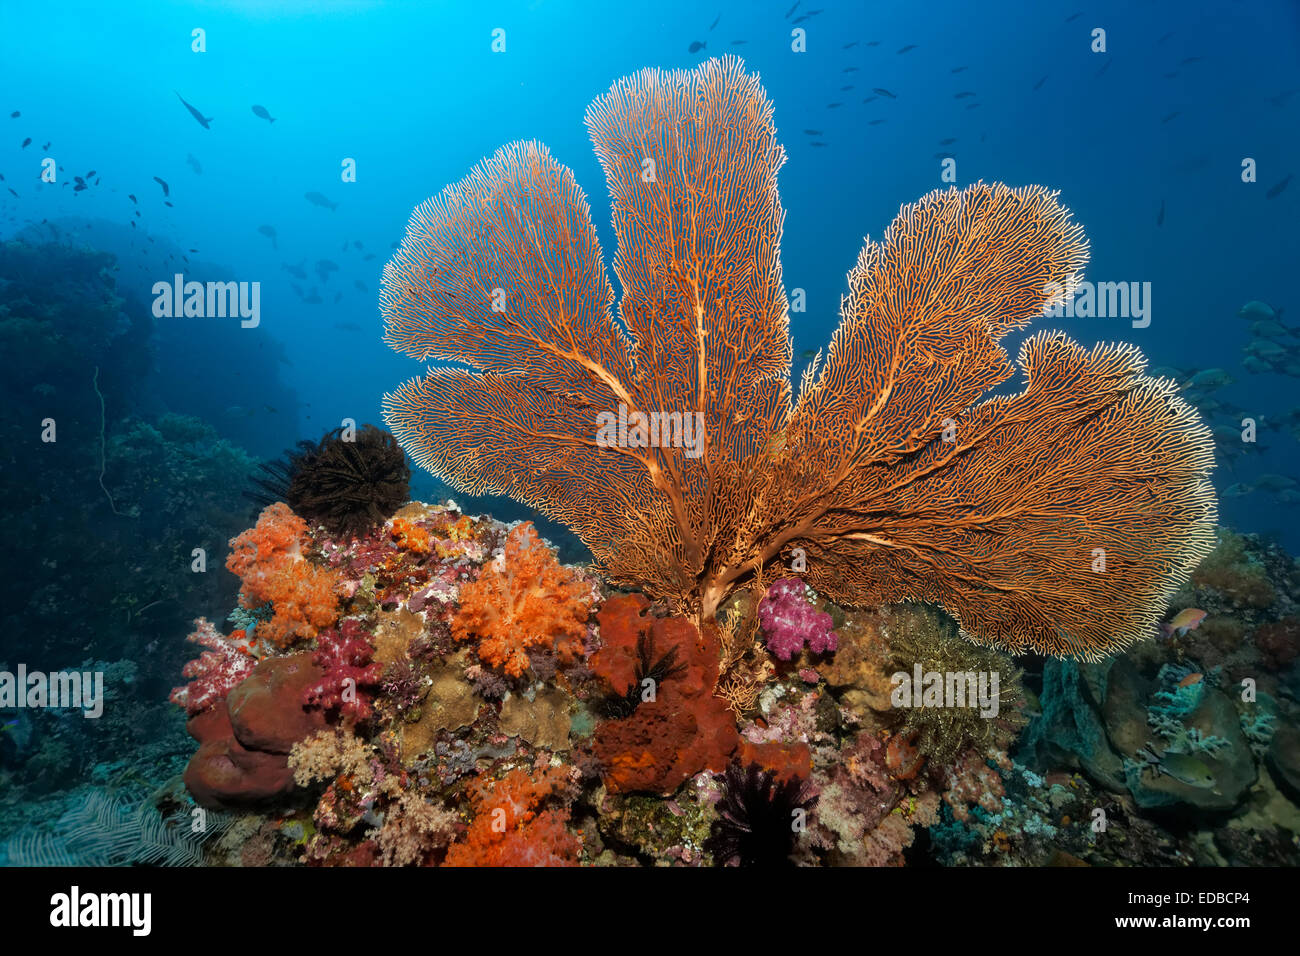 Coral reef roof with large gorgonian (Annella mollis), various soft corals (Alcyonacea), stony corals (Scleractinia) - Stock Image